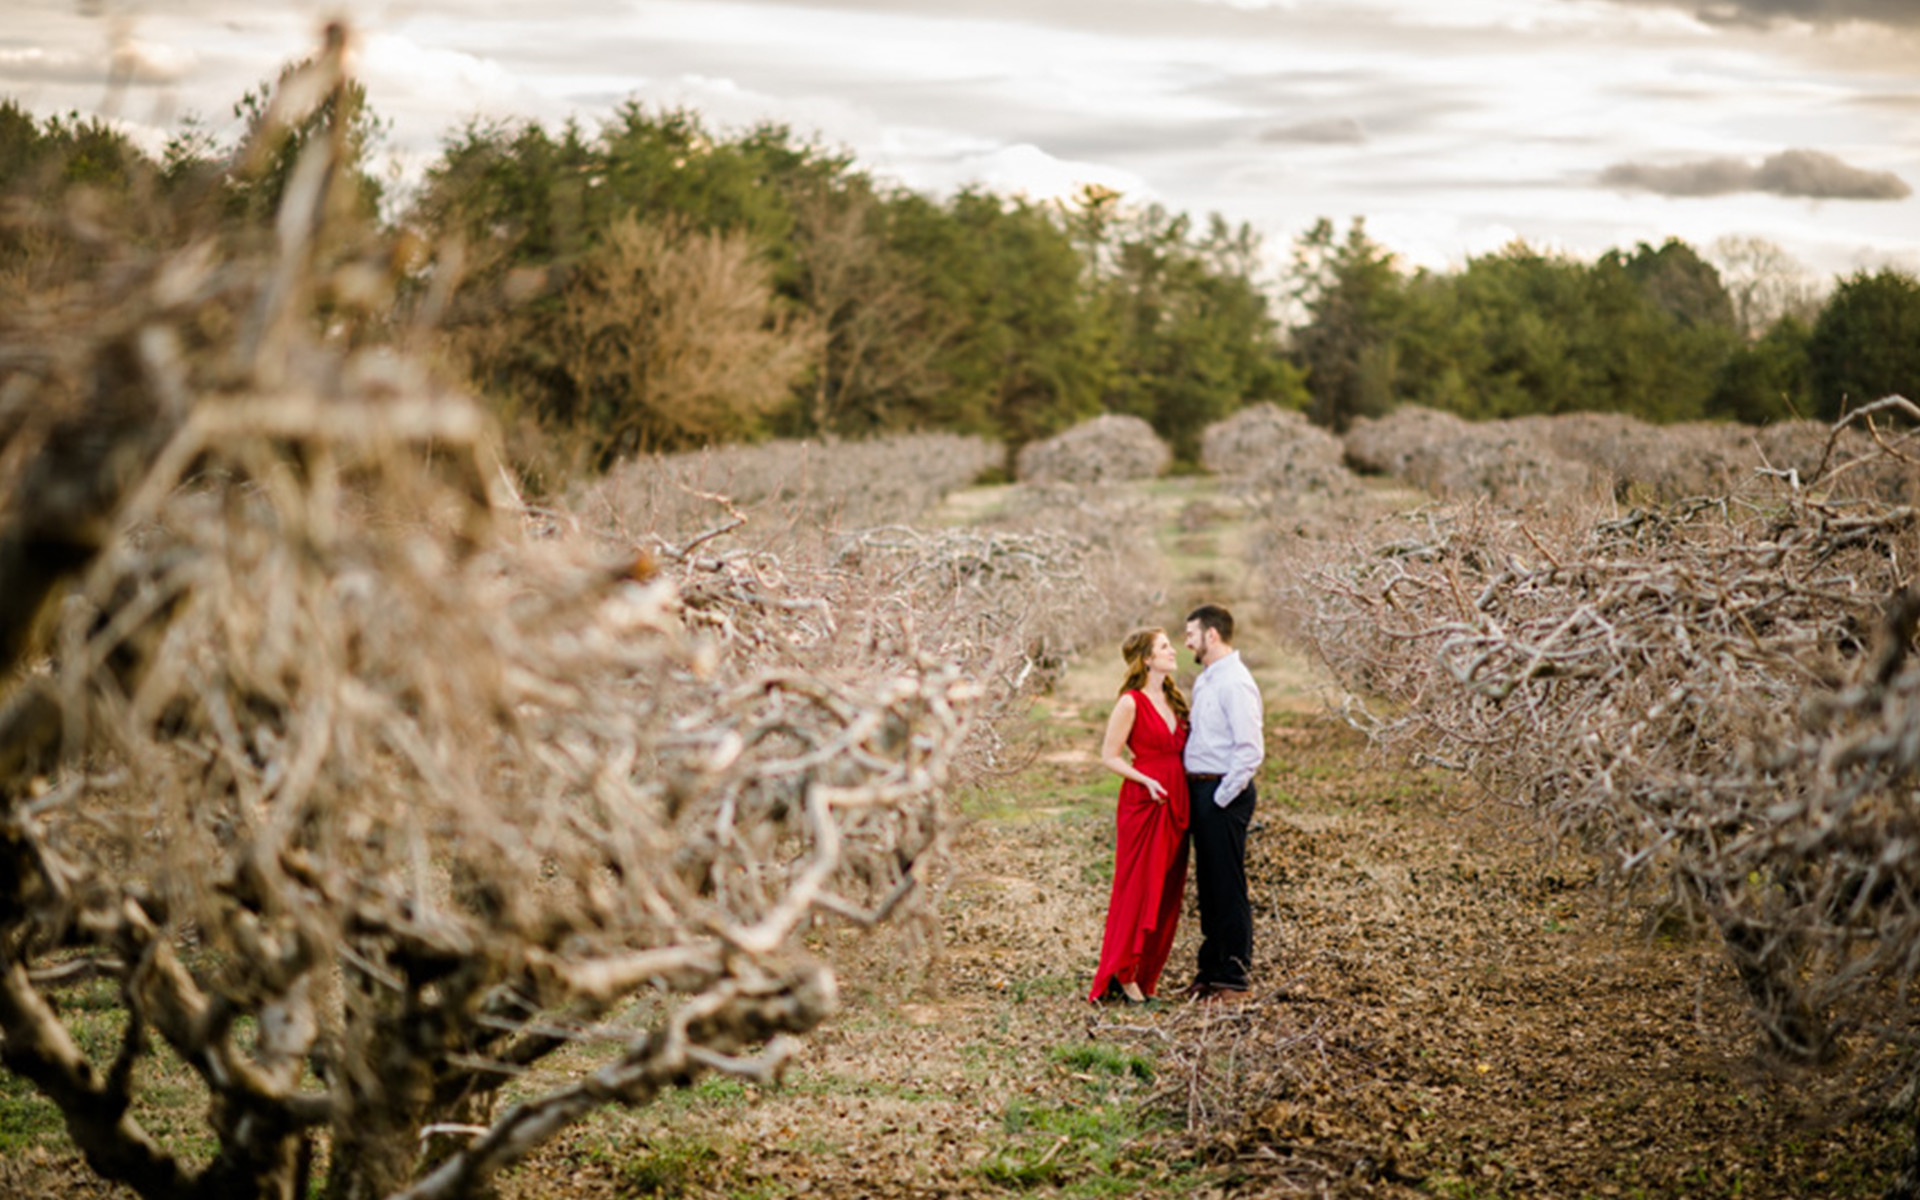 Dreamy Outdoor Engagement Session in a Quarry